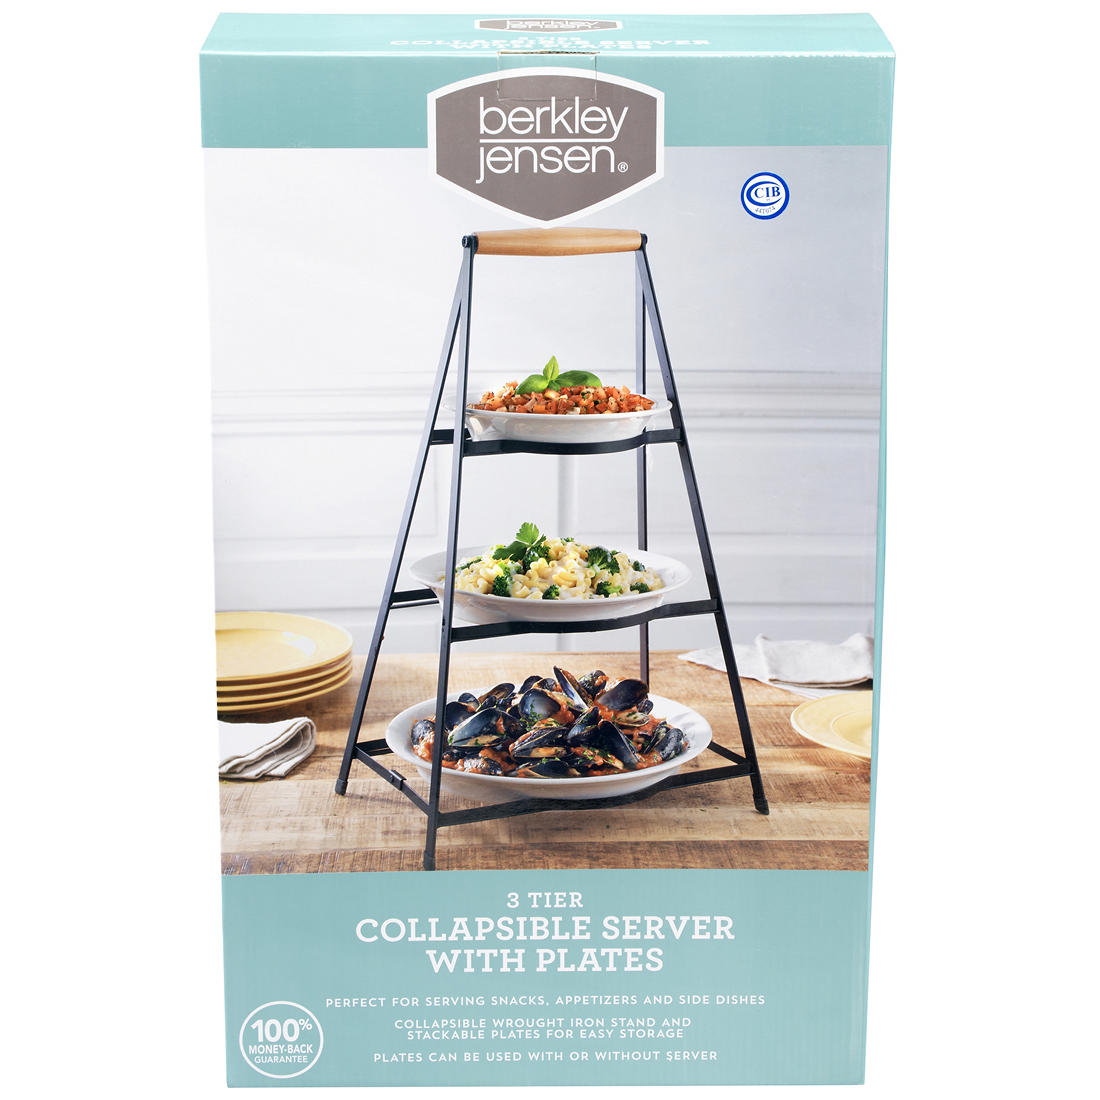 Awe Inspiring Berkley Jensen 3 Tier Collapsible Server With Plates Beutiful Home Inspiration Cosmmahrainfo